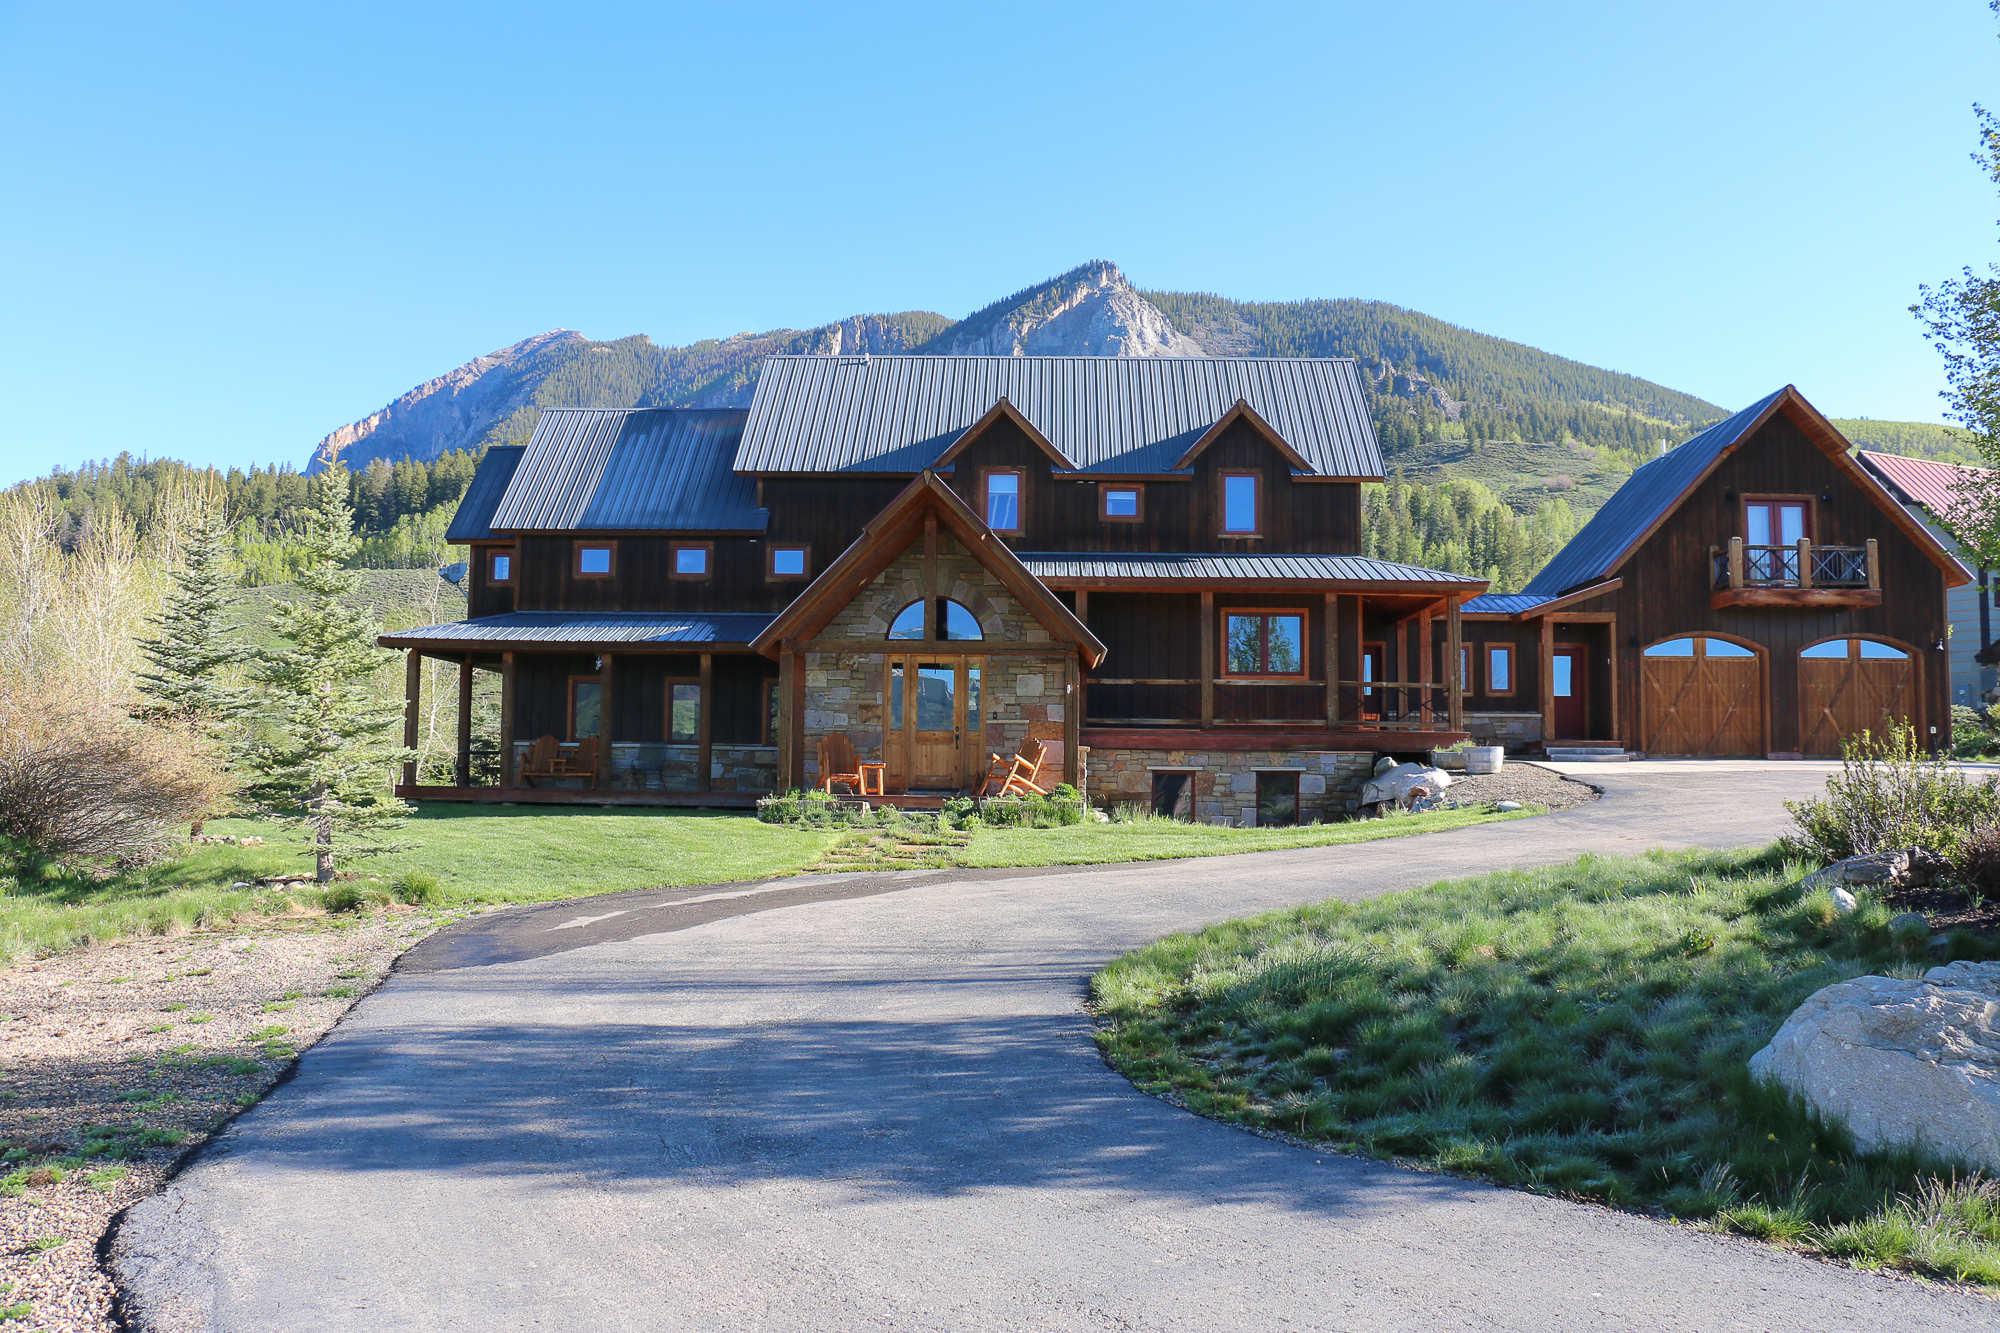 Single Family Home for Sale at Exquisite Craftsmanship 36 Buckhorn Way Crested Butte, Colorado, 81224 United States